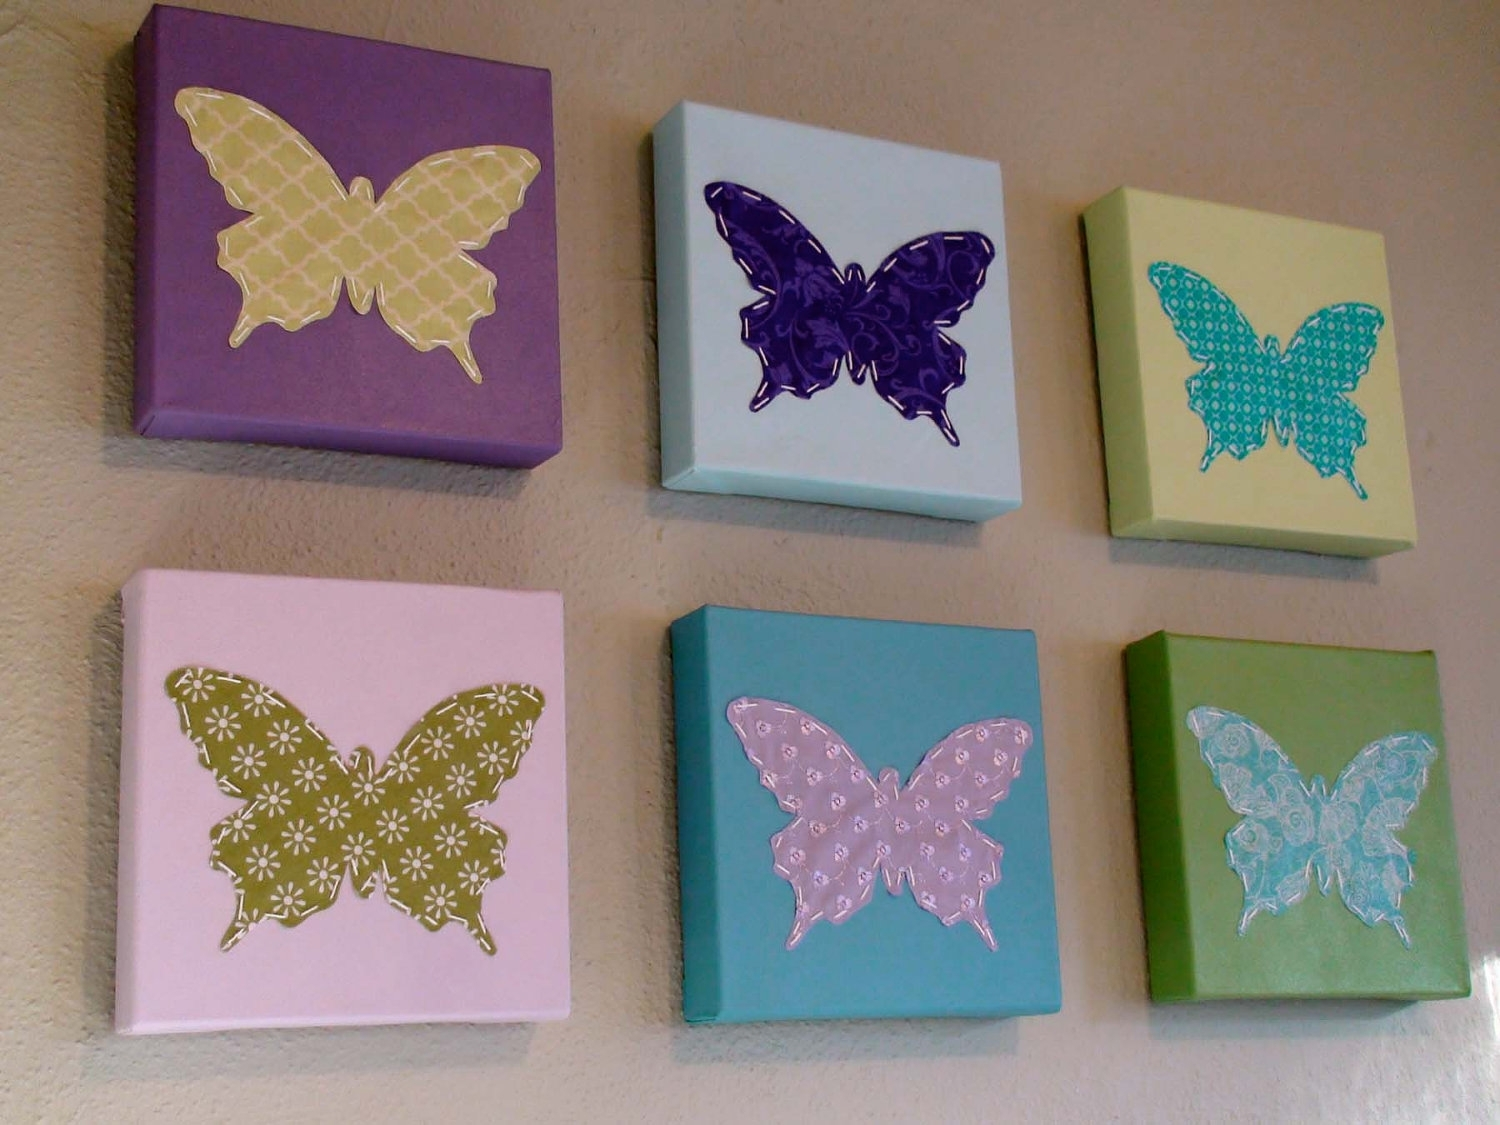 Set Butterfly Wall Art Canvas Painting Babysullysart – Dma Homes Within 2017 Butterflies Canvas Wall Art (Gallery 2 of 15)